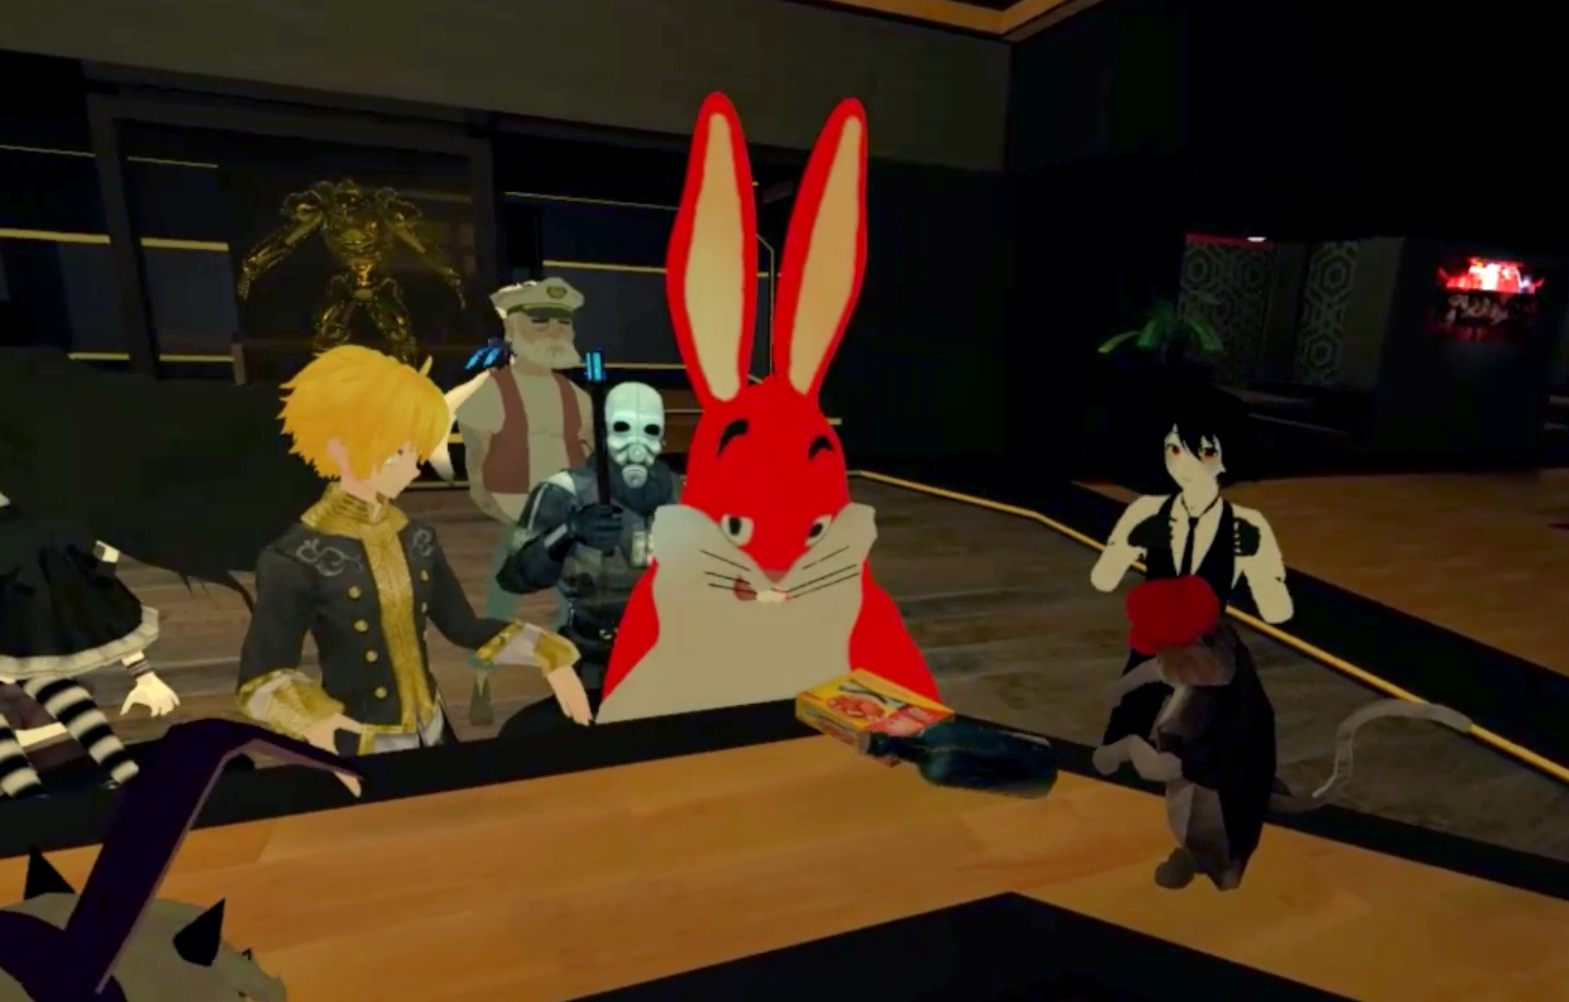 The Big Chungus Vrchat Legends Wiki Fandom Powered By Wikia